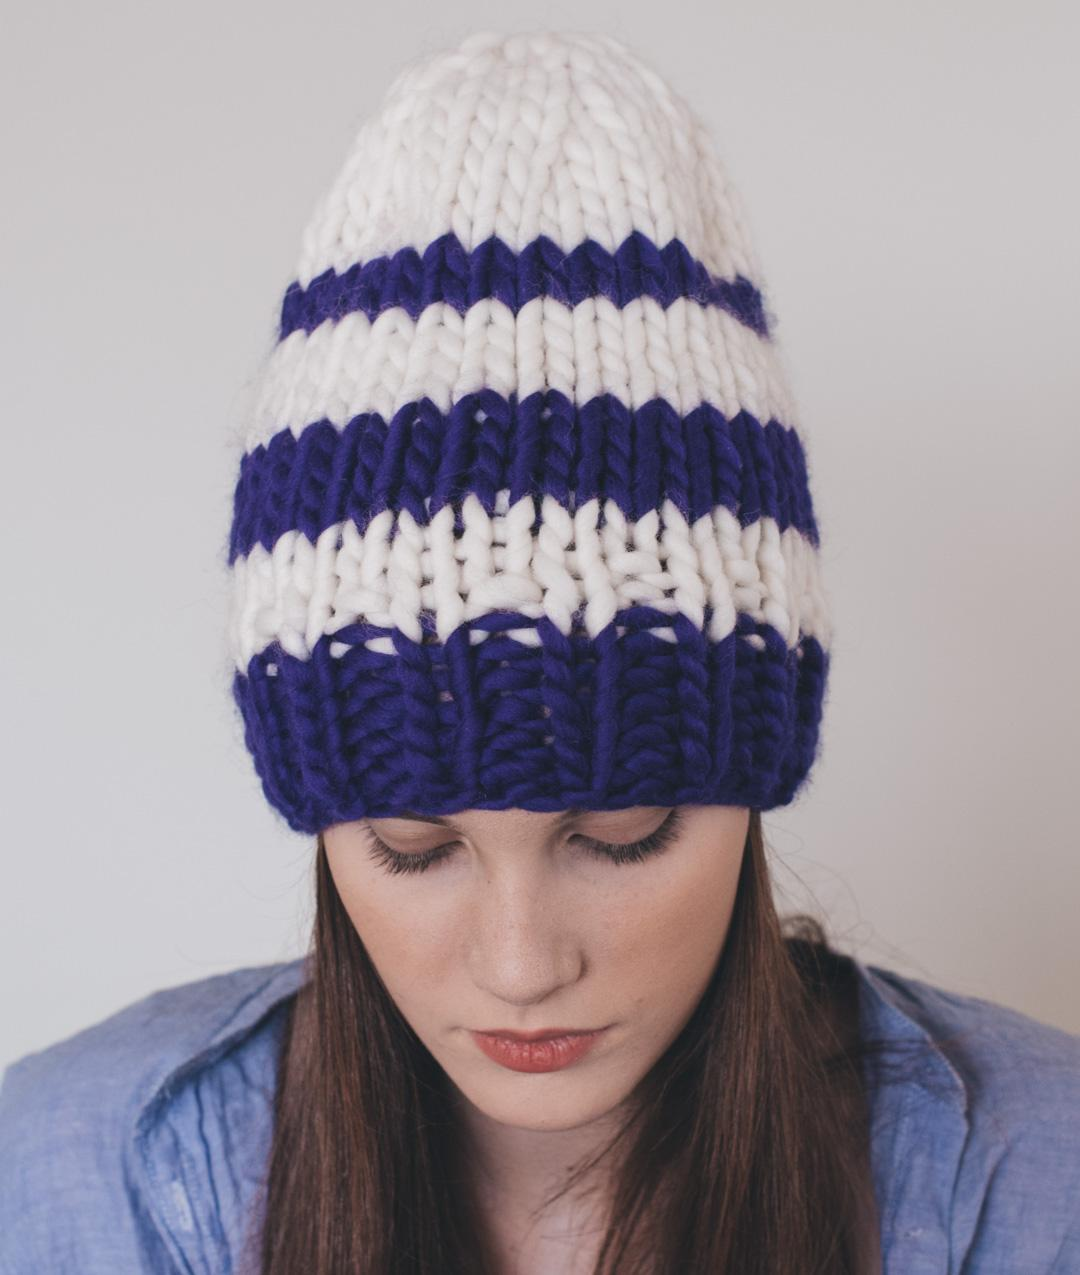 Hats and Beanies - Wool - Striped Beanie - 1